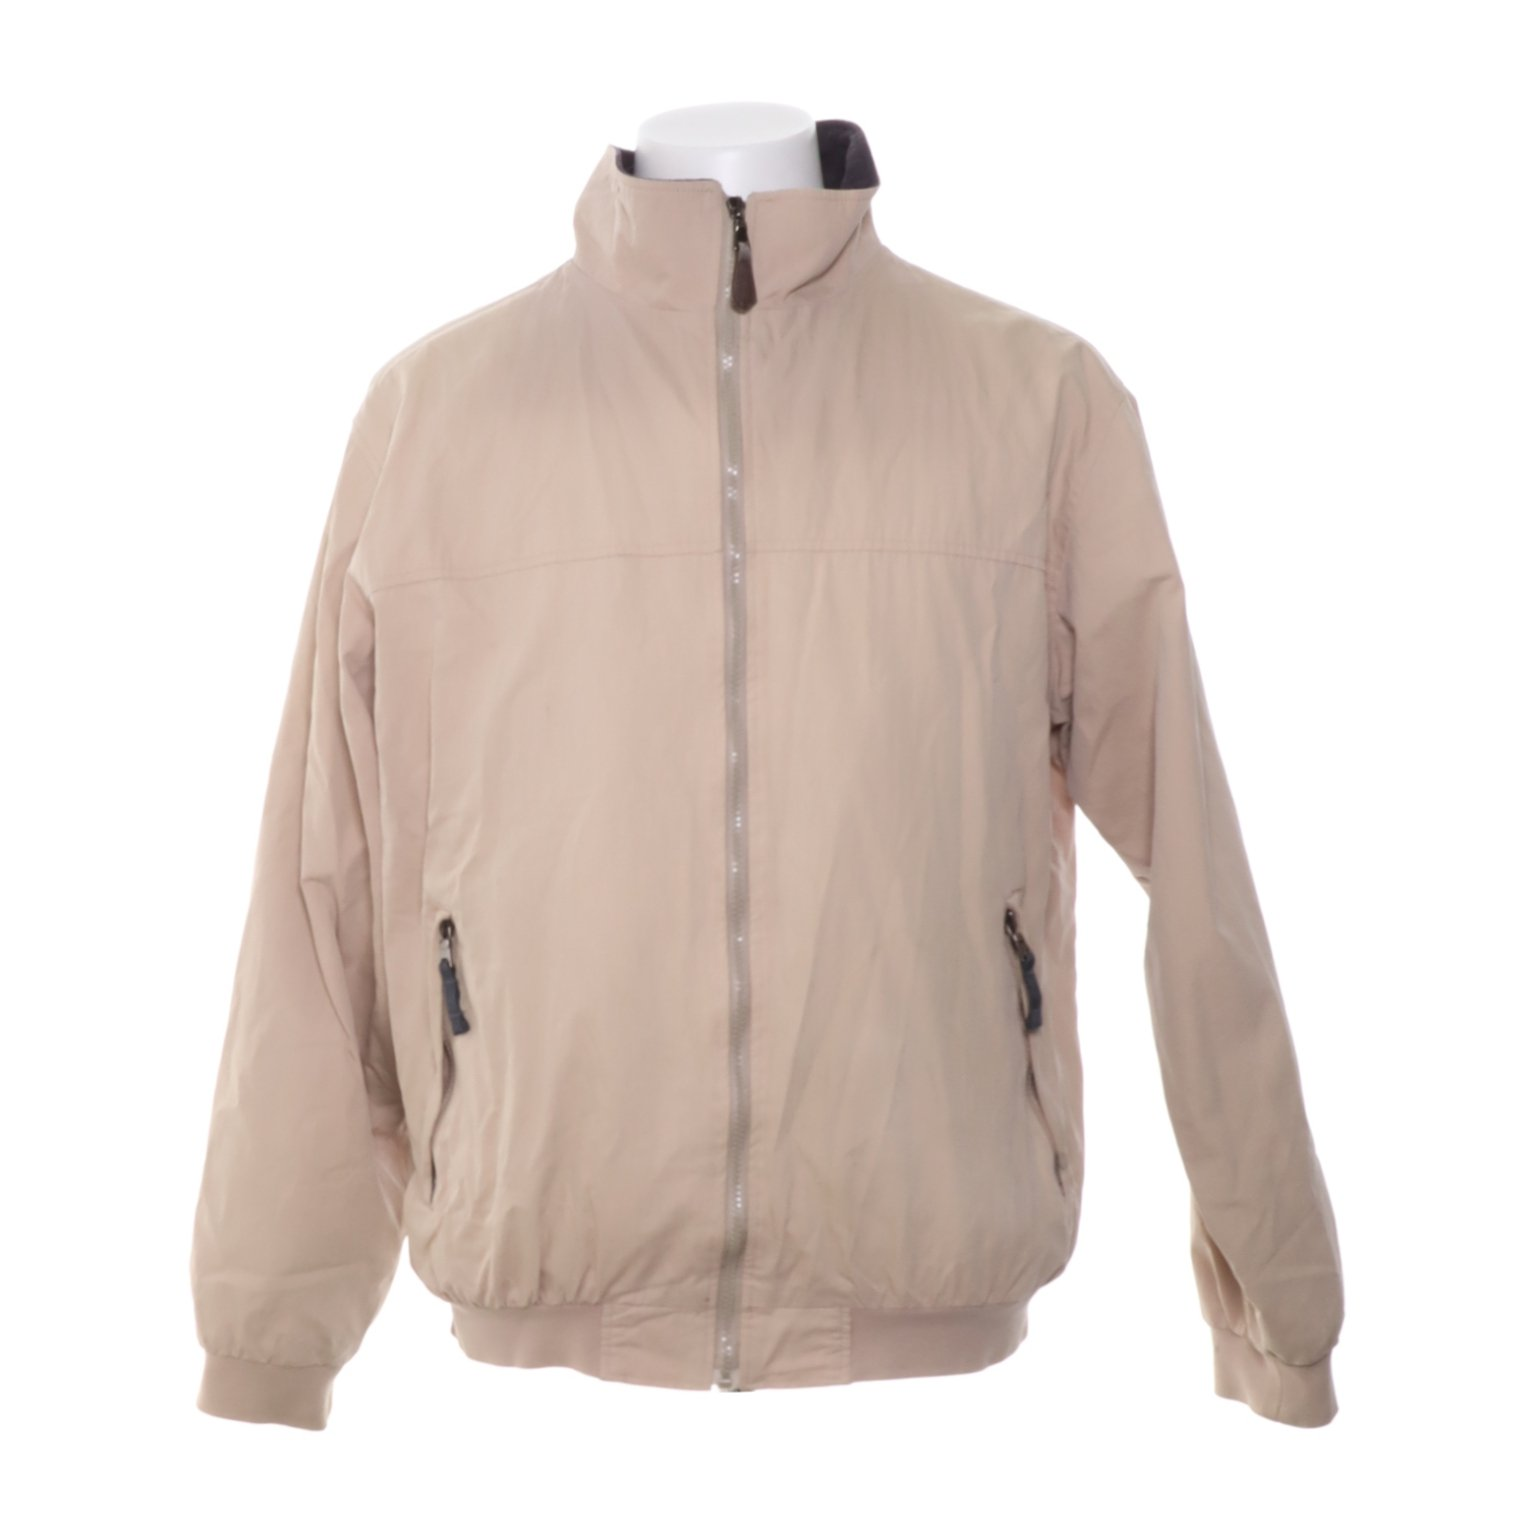 PL Expedition, Jacka, Strl: L, Beige, Bomull/Polyamid/Polyester